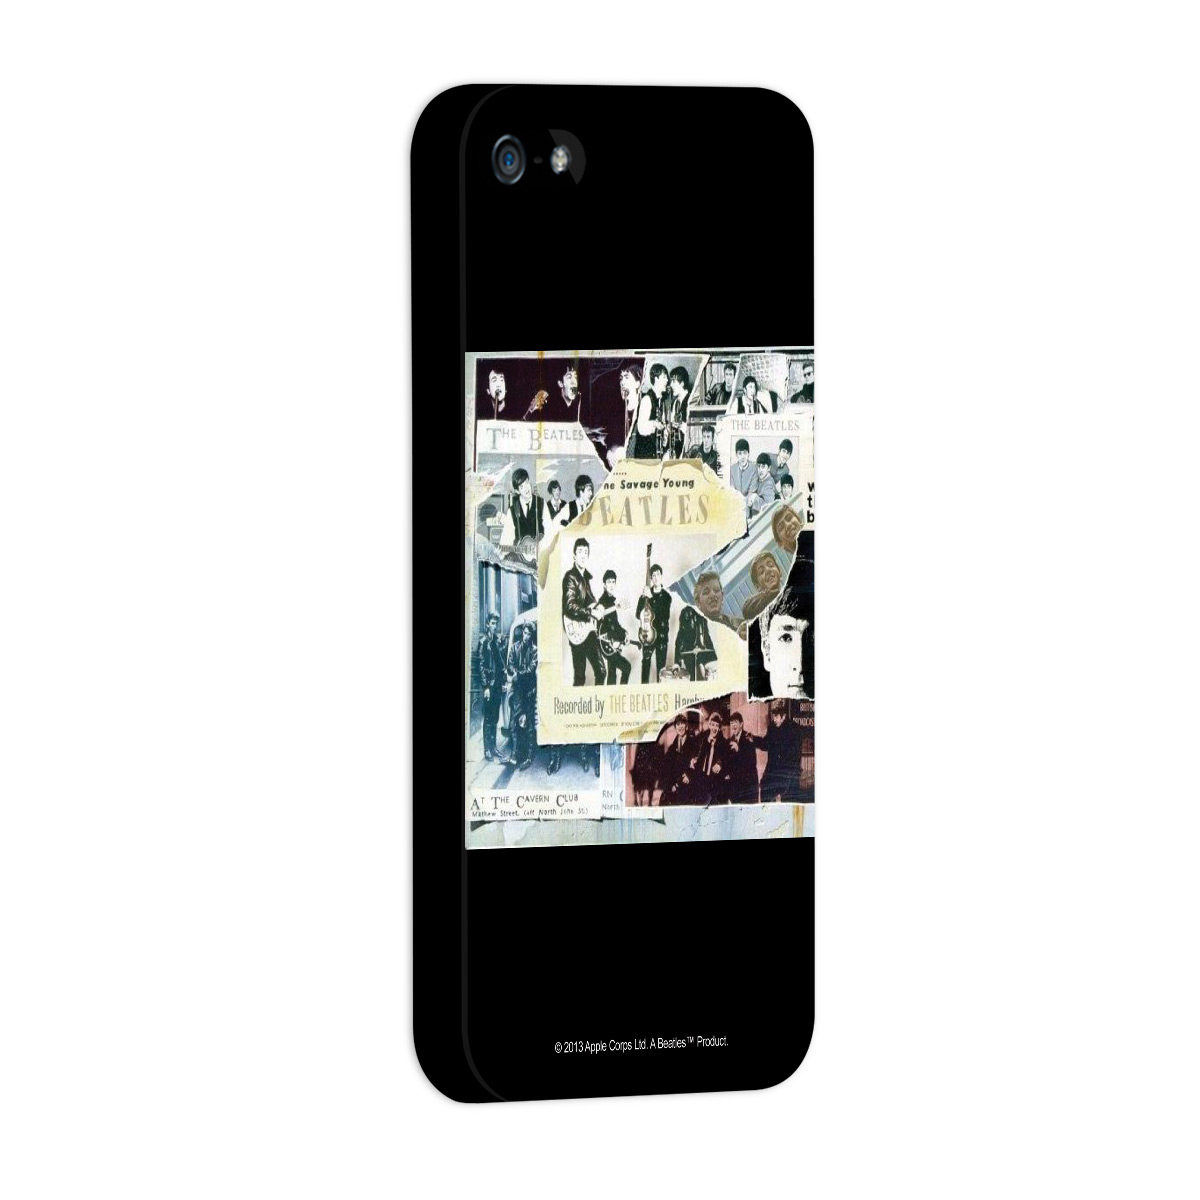 Capa de iPhone 5/5S The Beatles Anthology I